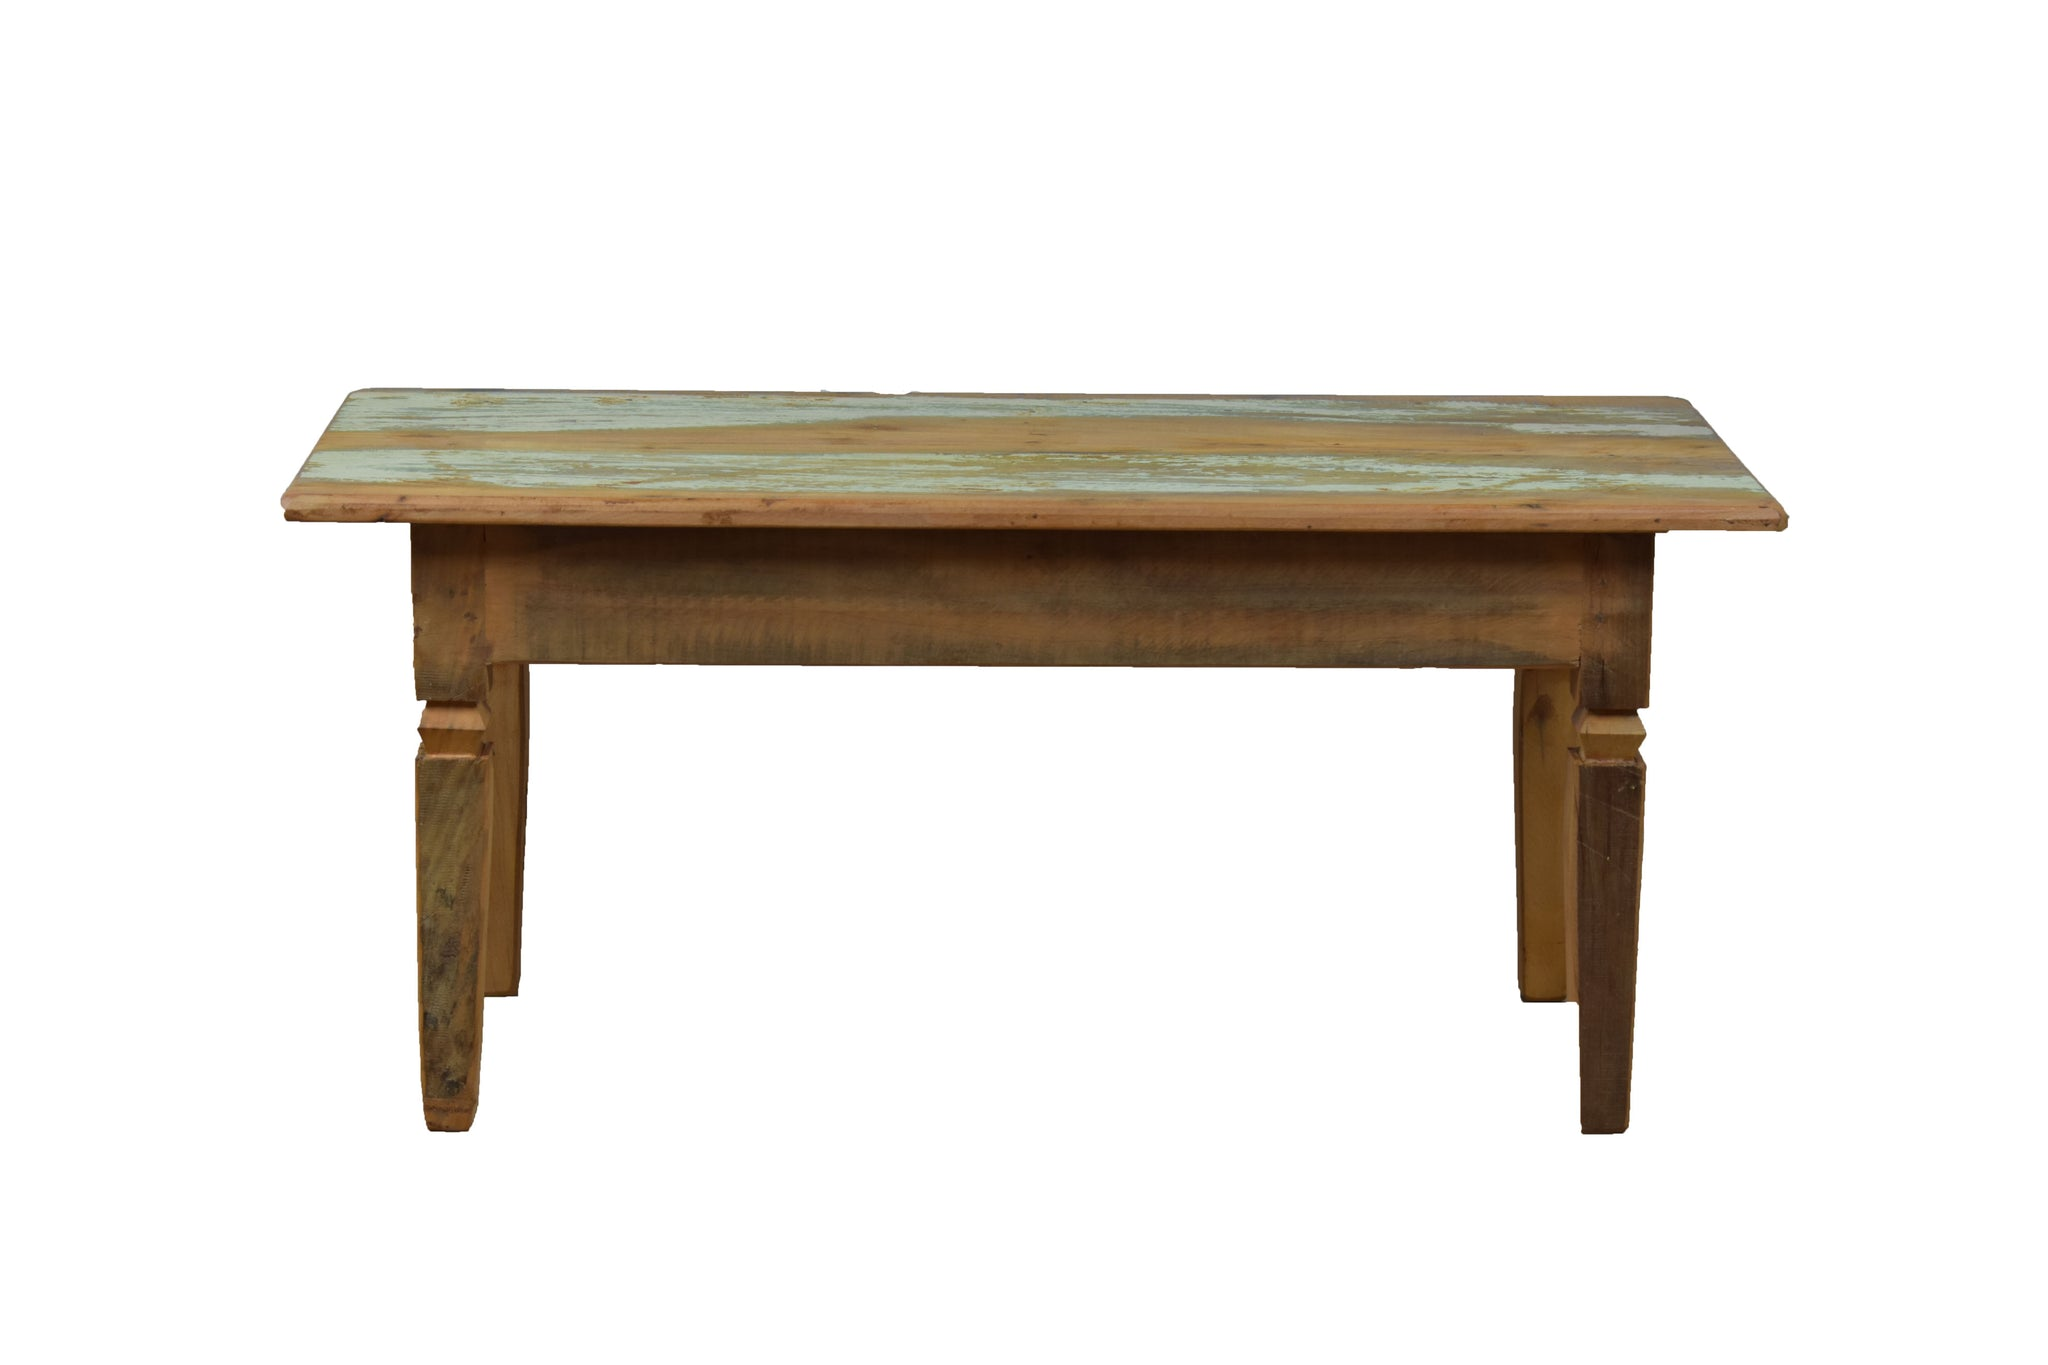 reclaimed wood bench, reclaimed wood dining bench, end table bench,